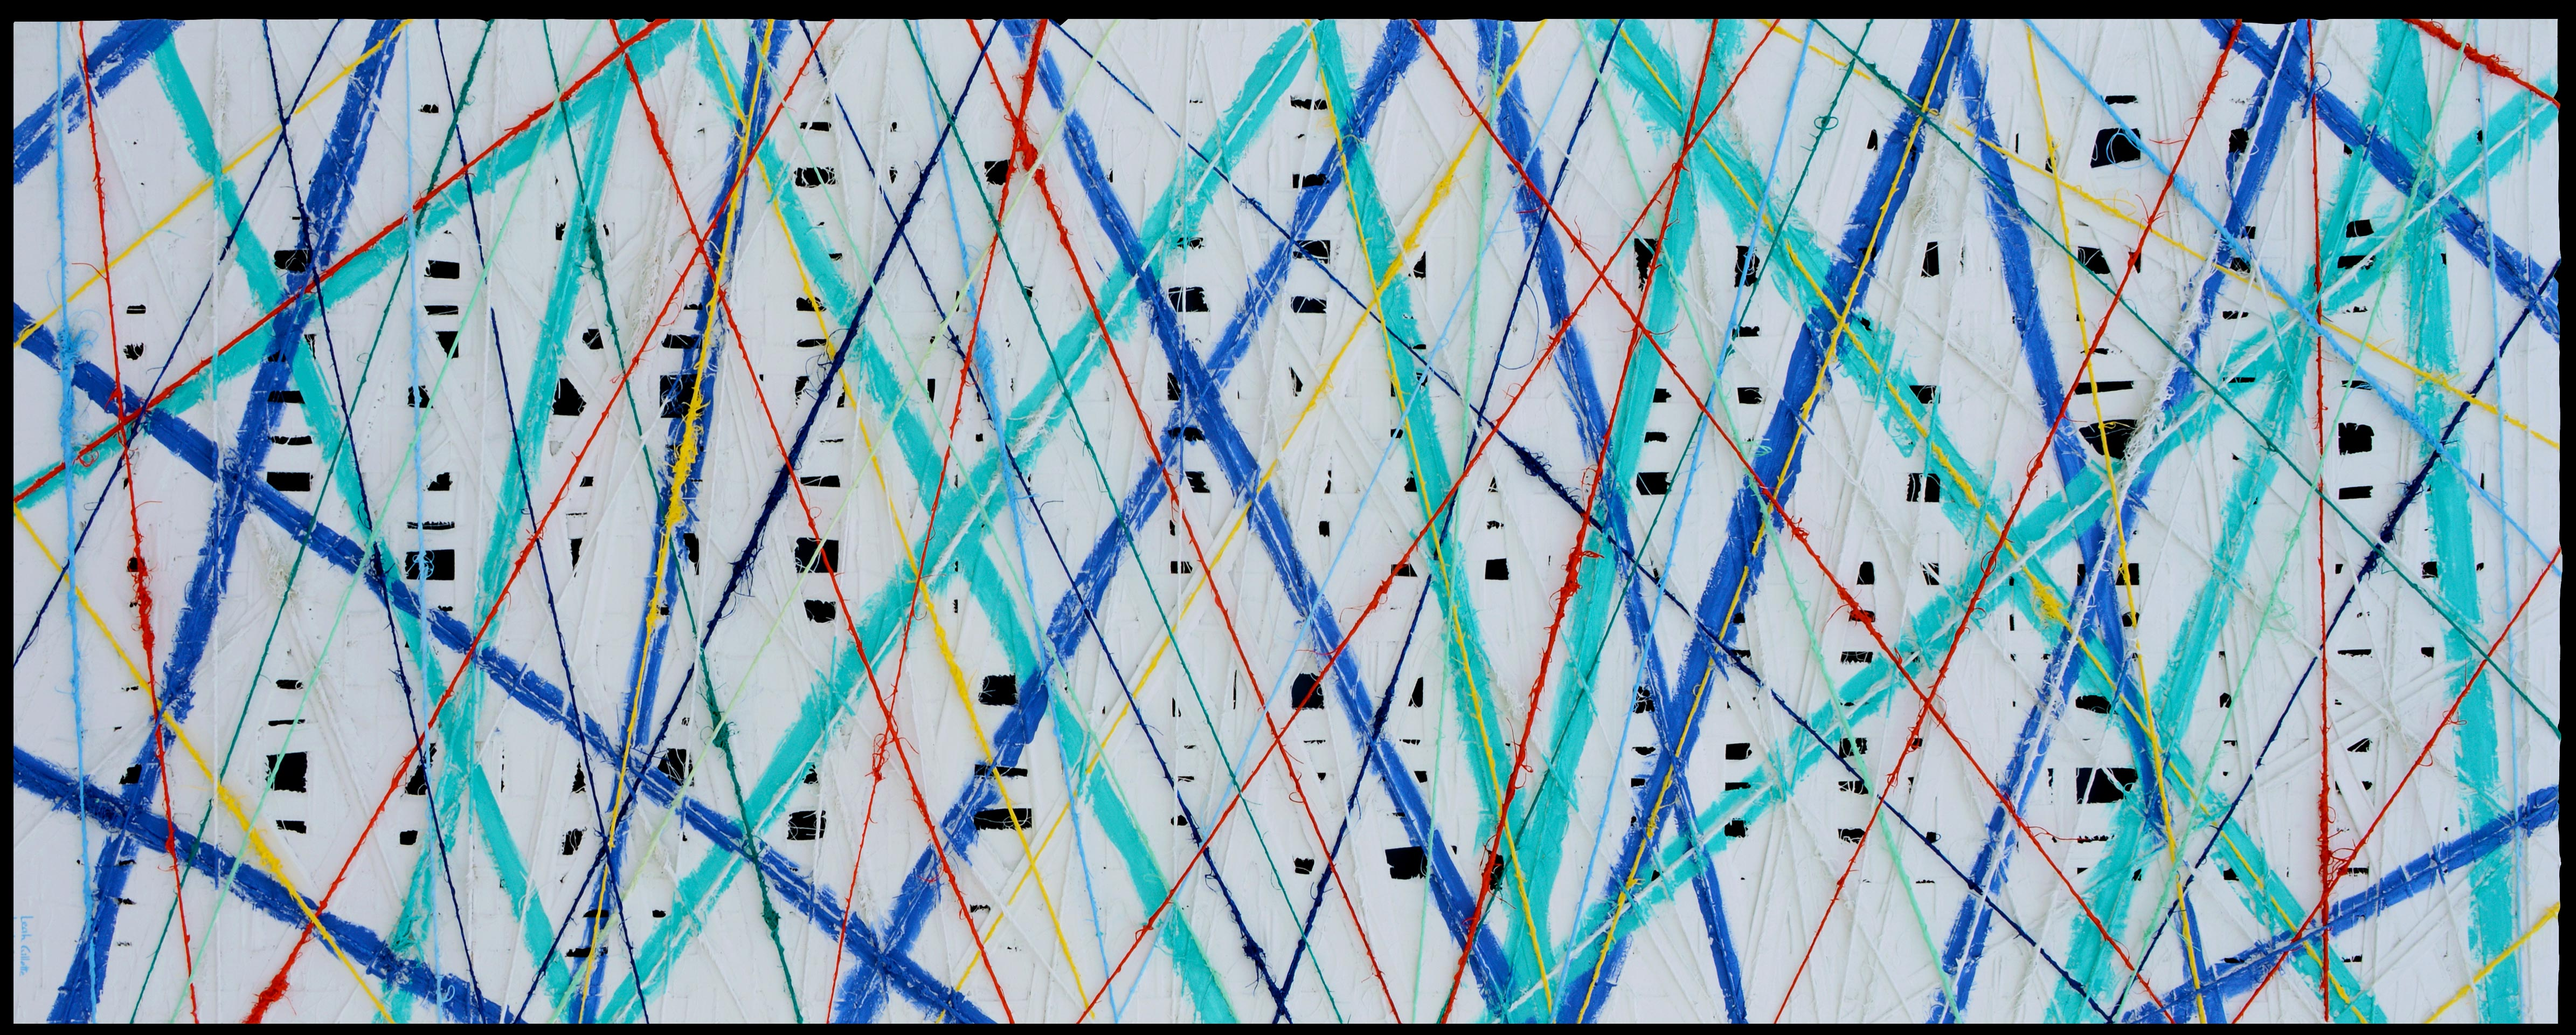 String Theory, Series 2 by Leah Gillette